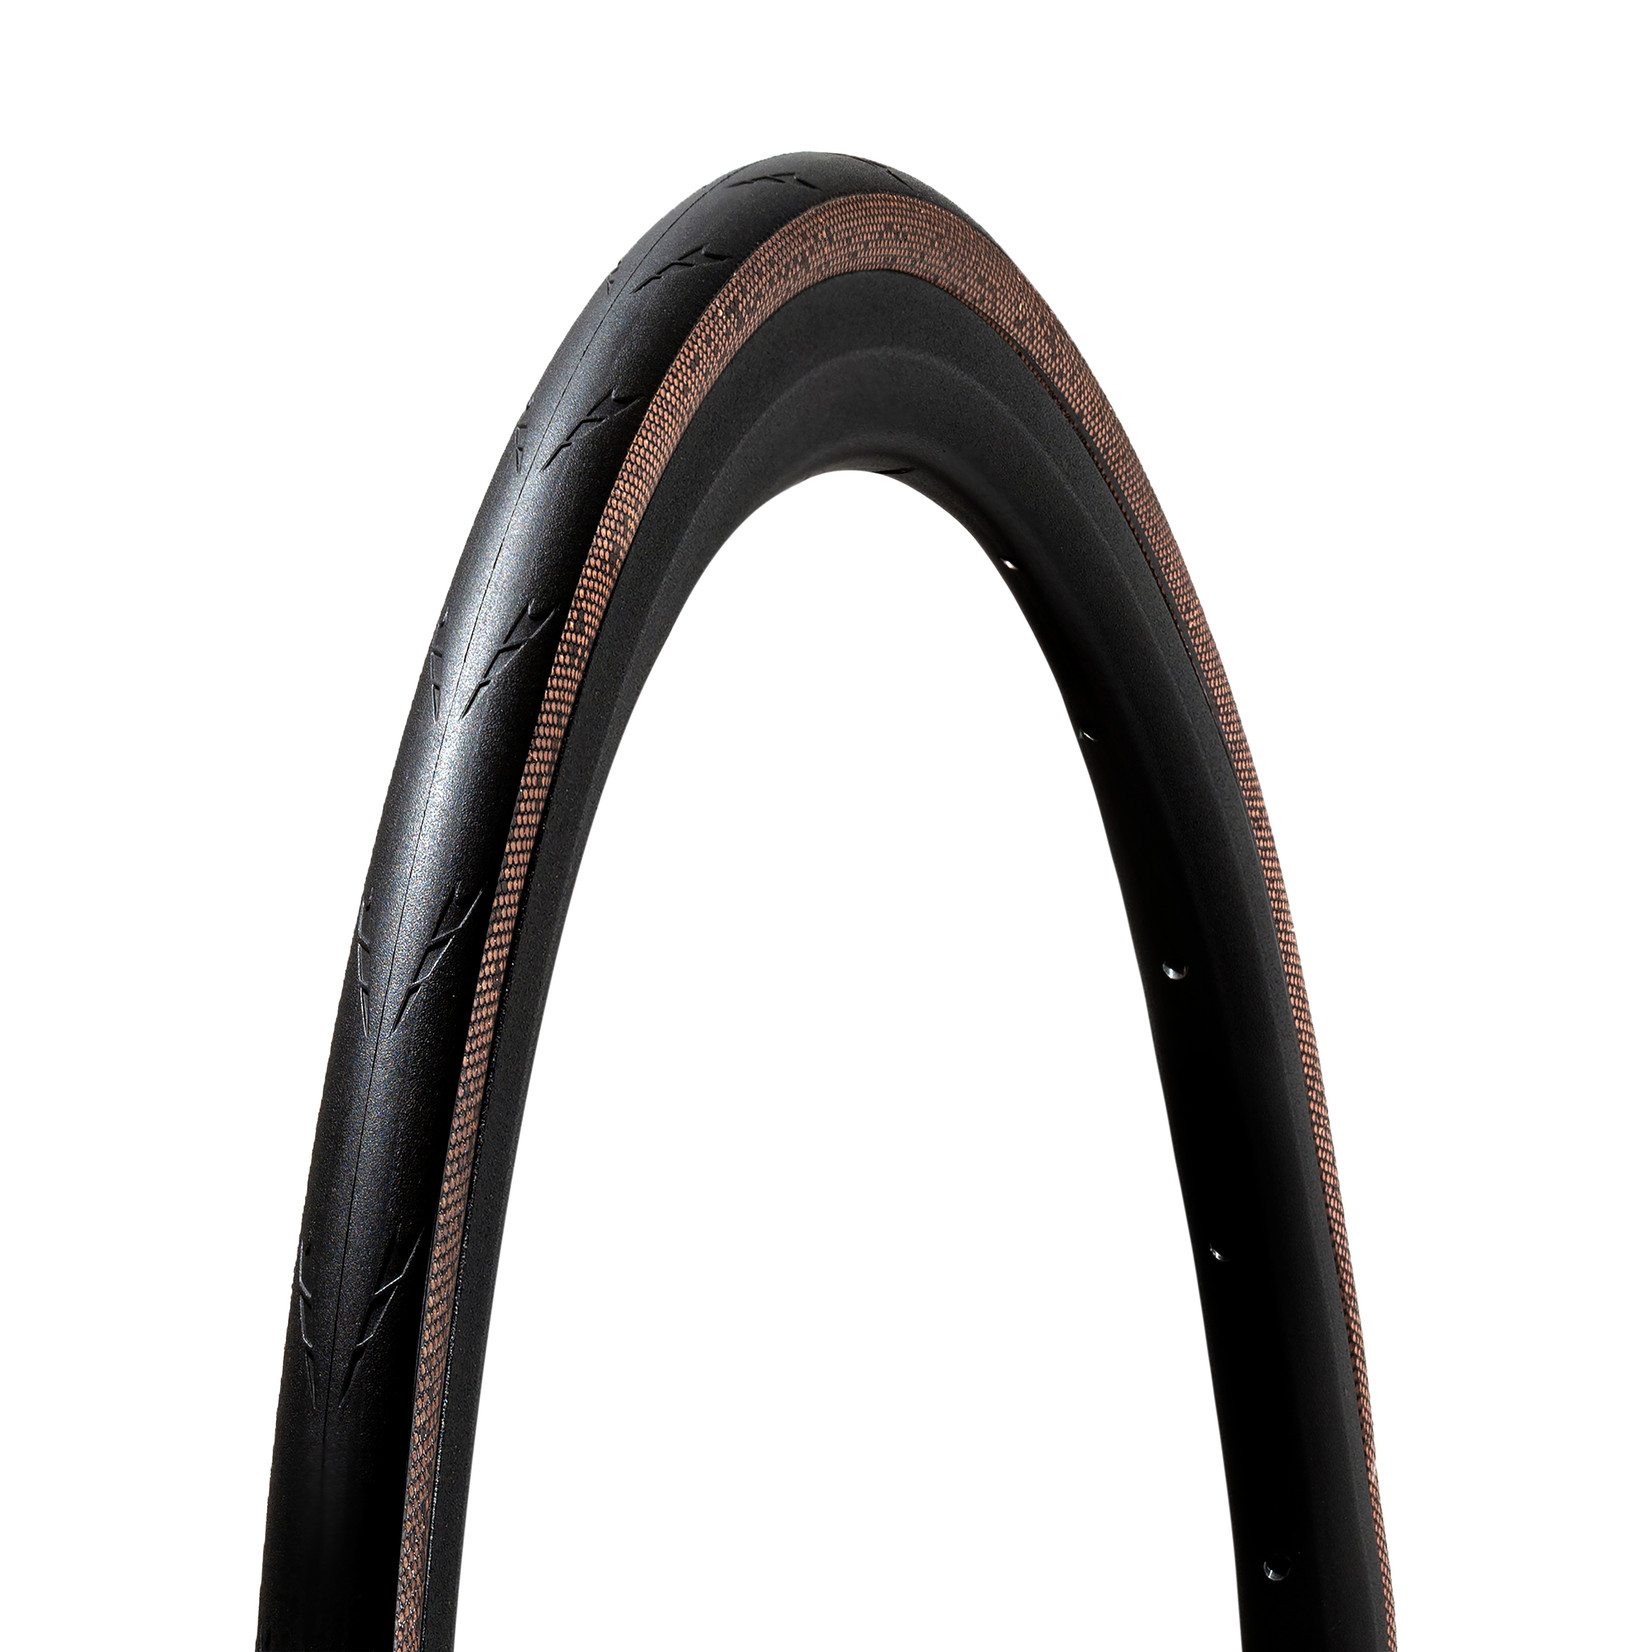 Hutchinson Fusion 5 Performance Tyre (Gridskin, 700 X 28, TR, GS, 11S)